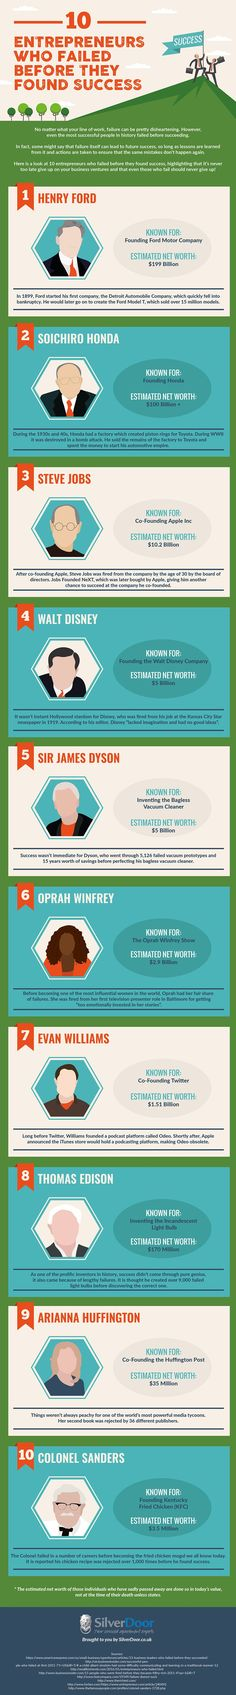 10 entreteneurs who failed before they found success #infographic